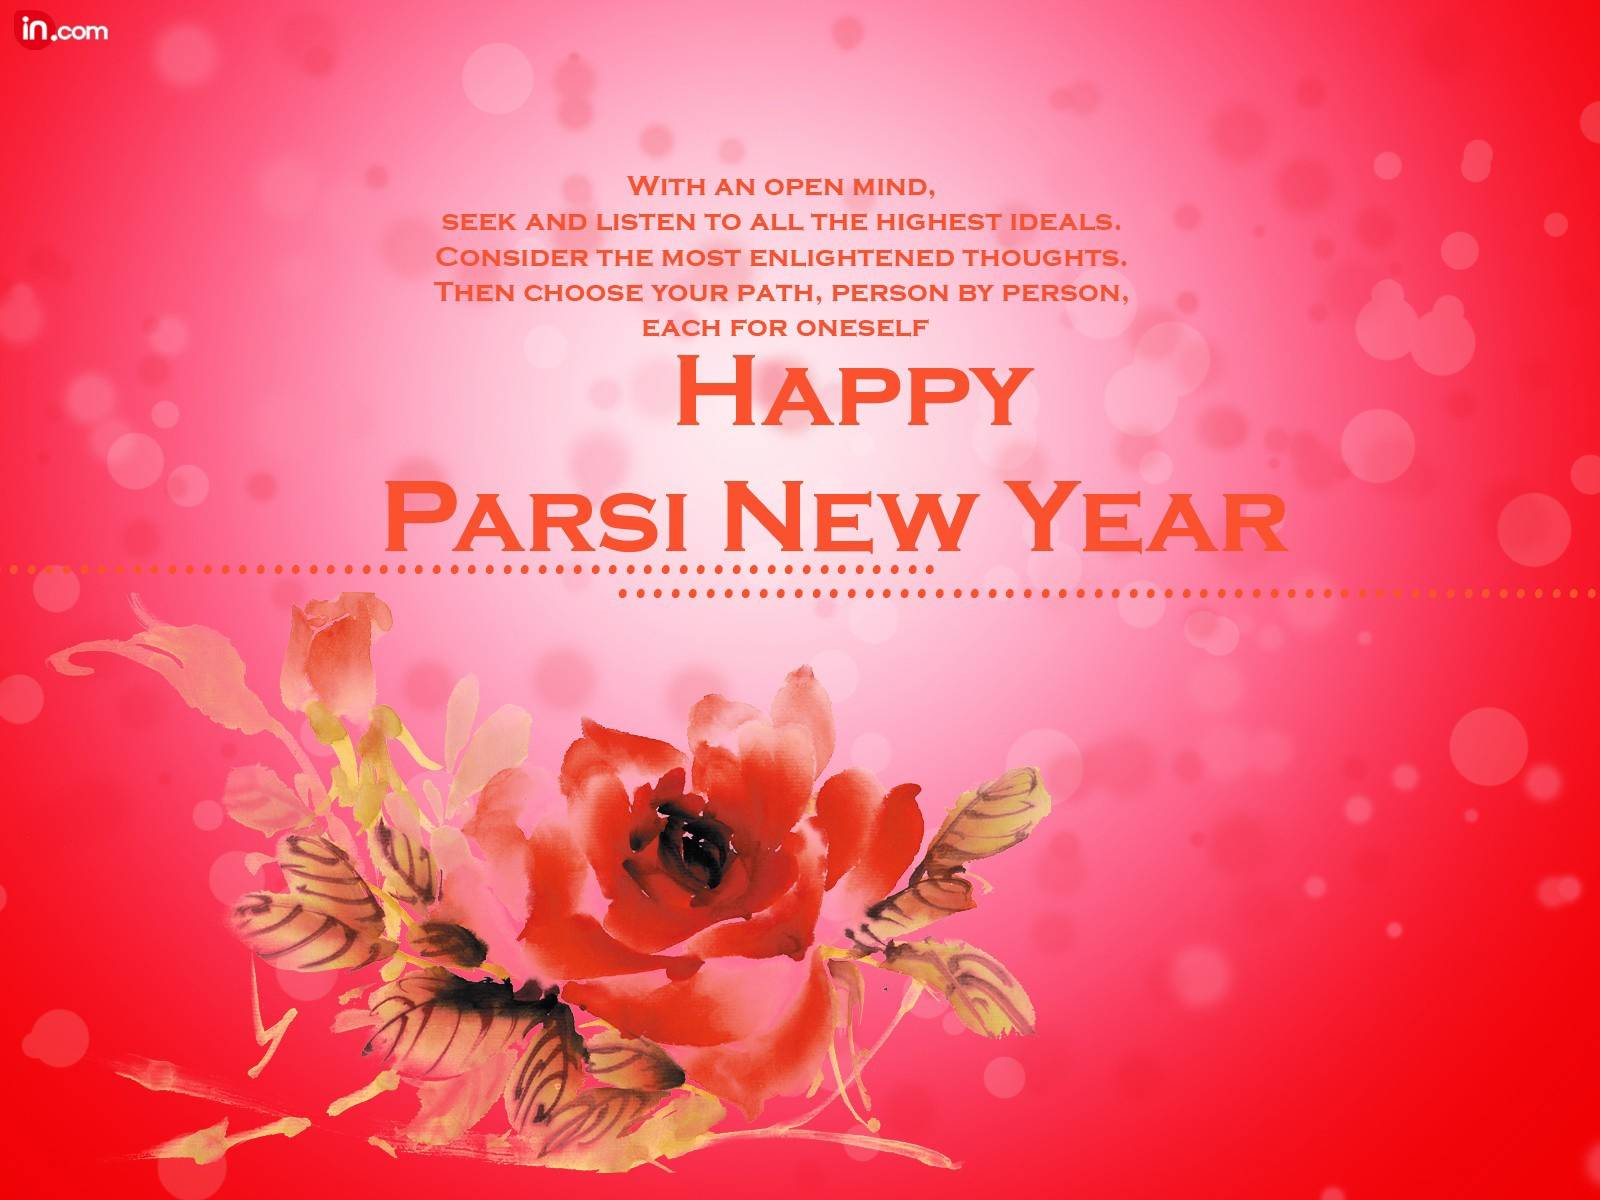 Happy navroz mubarak parsi new year 2018 messages wishes sms parsi new year greetings images photos wallpapers kristyandbryce Gallery